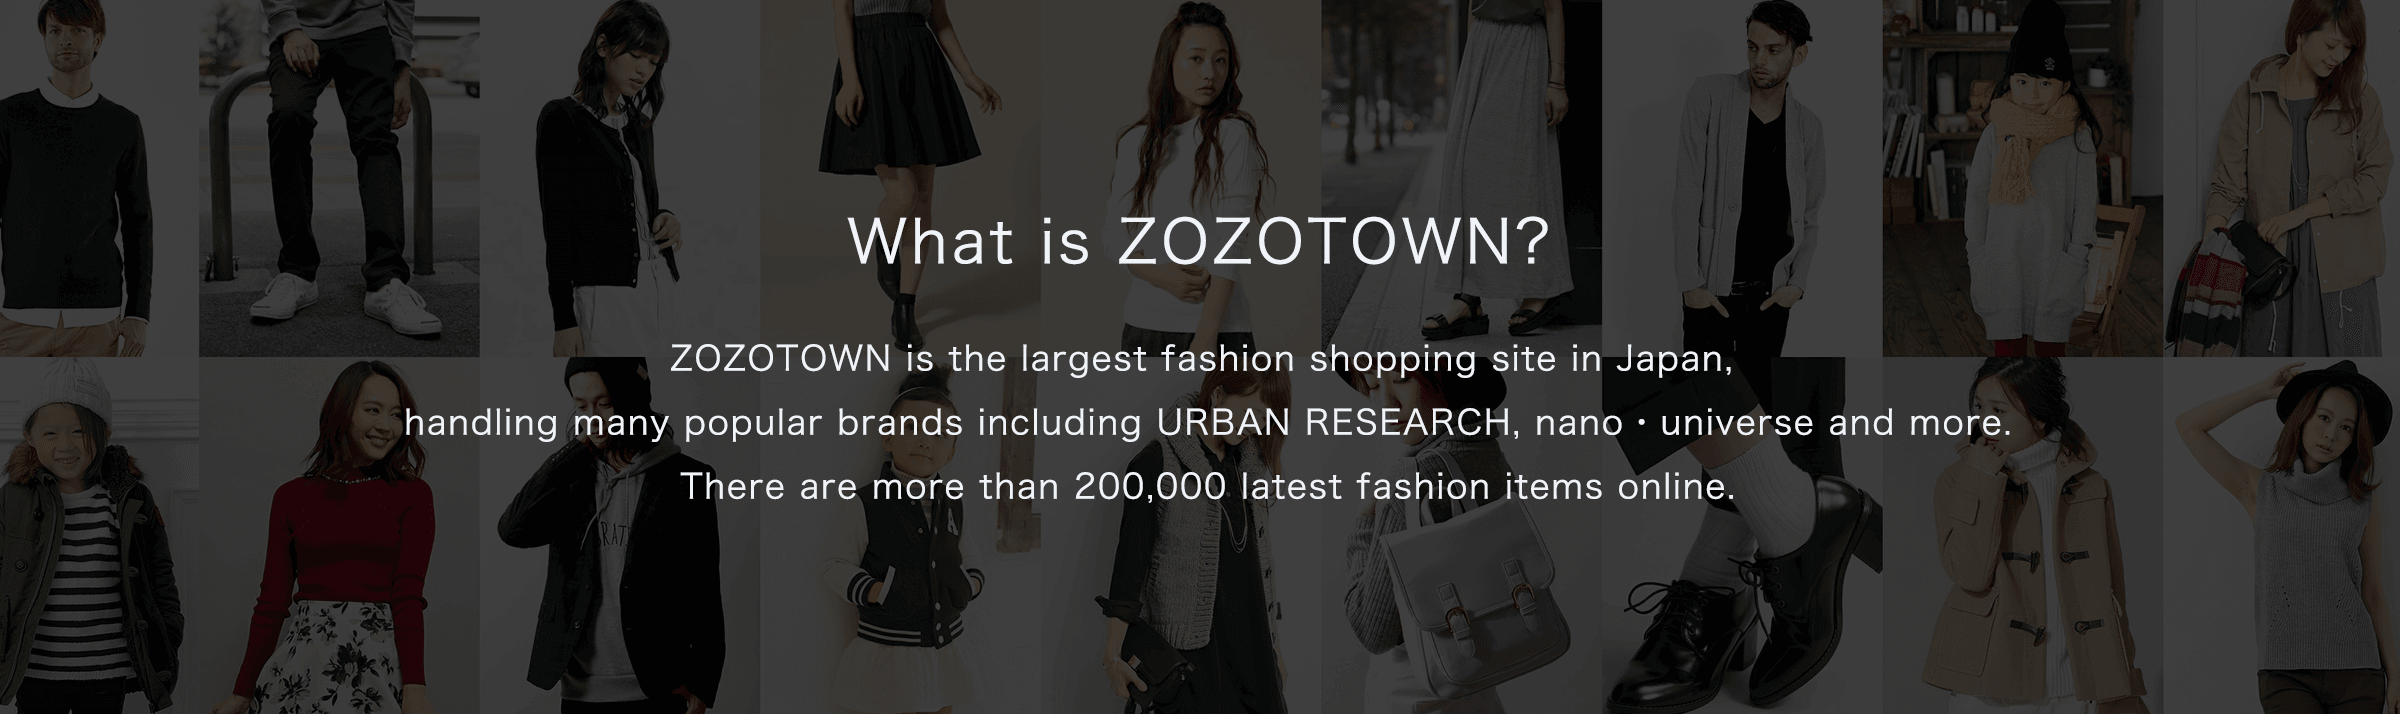 ZOZOTOWN is the largest fashion shopping site in Japan, handling many popular brands including URBAN RESEARCH, nano・universe and more. There are more than 200,000 latest fashion items online.